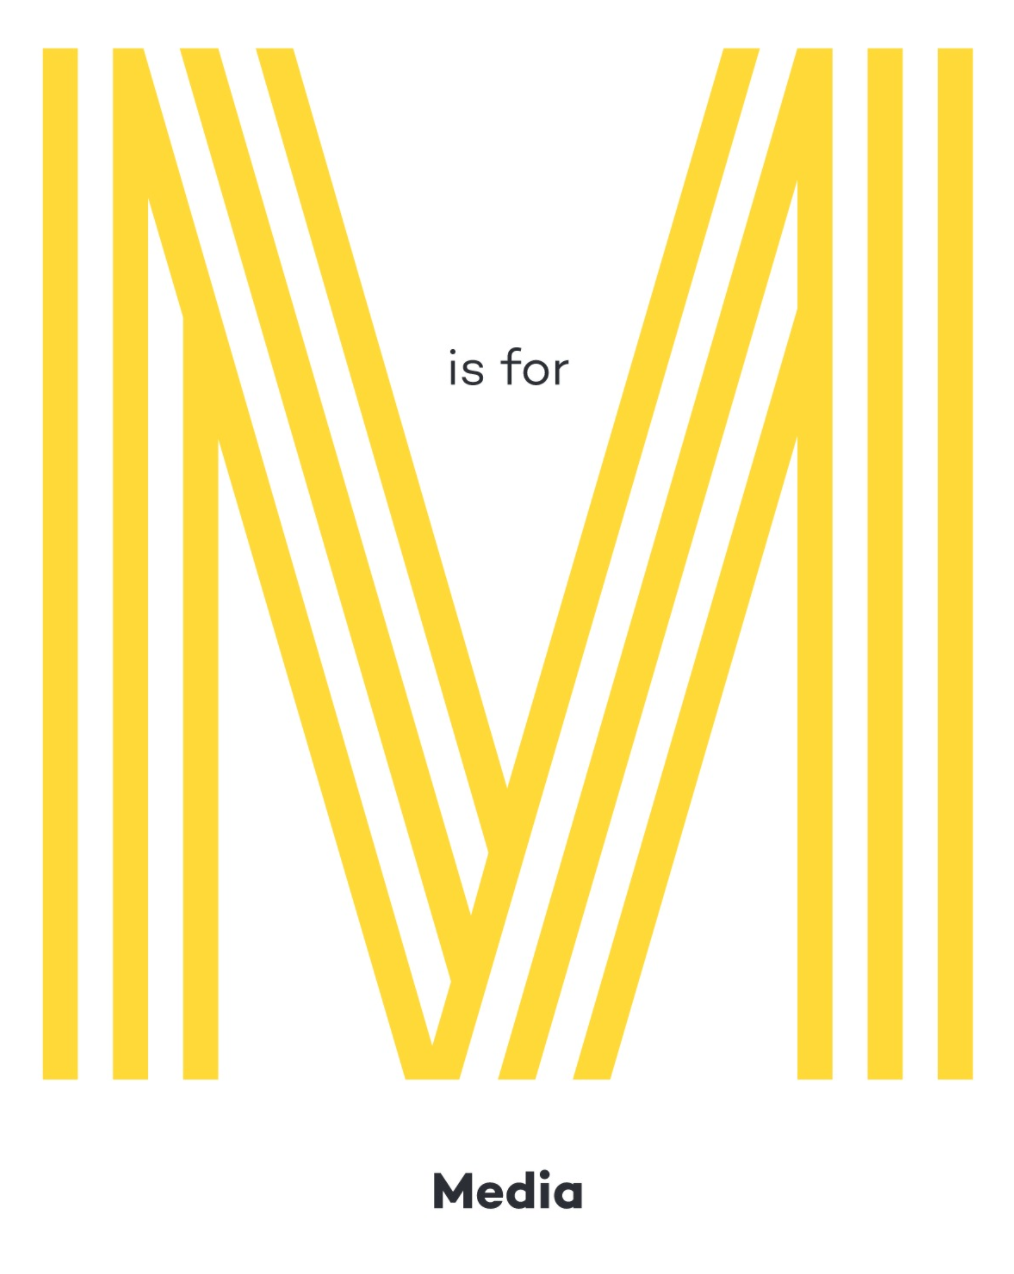 M is for Media: A Key in the Development of Your Personal Brand | Social Media Today